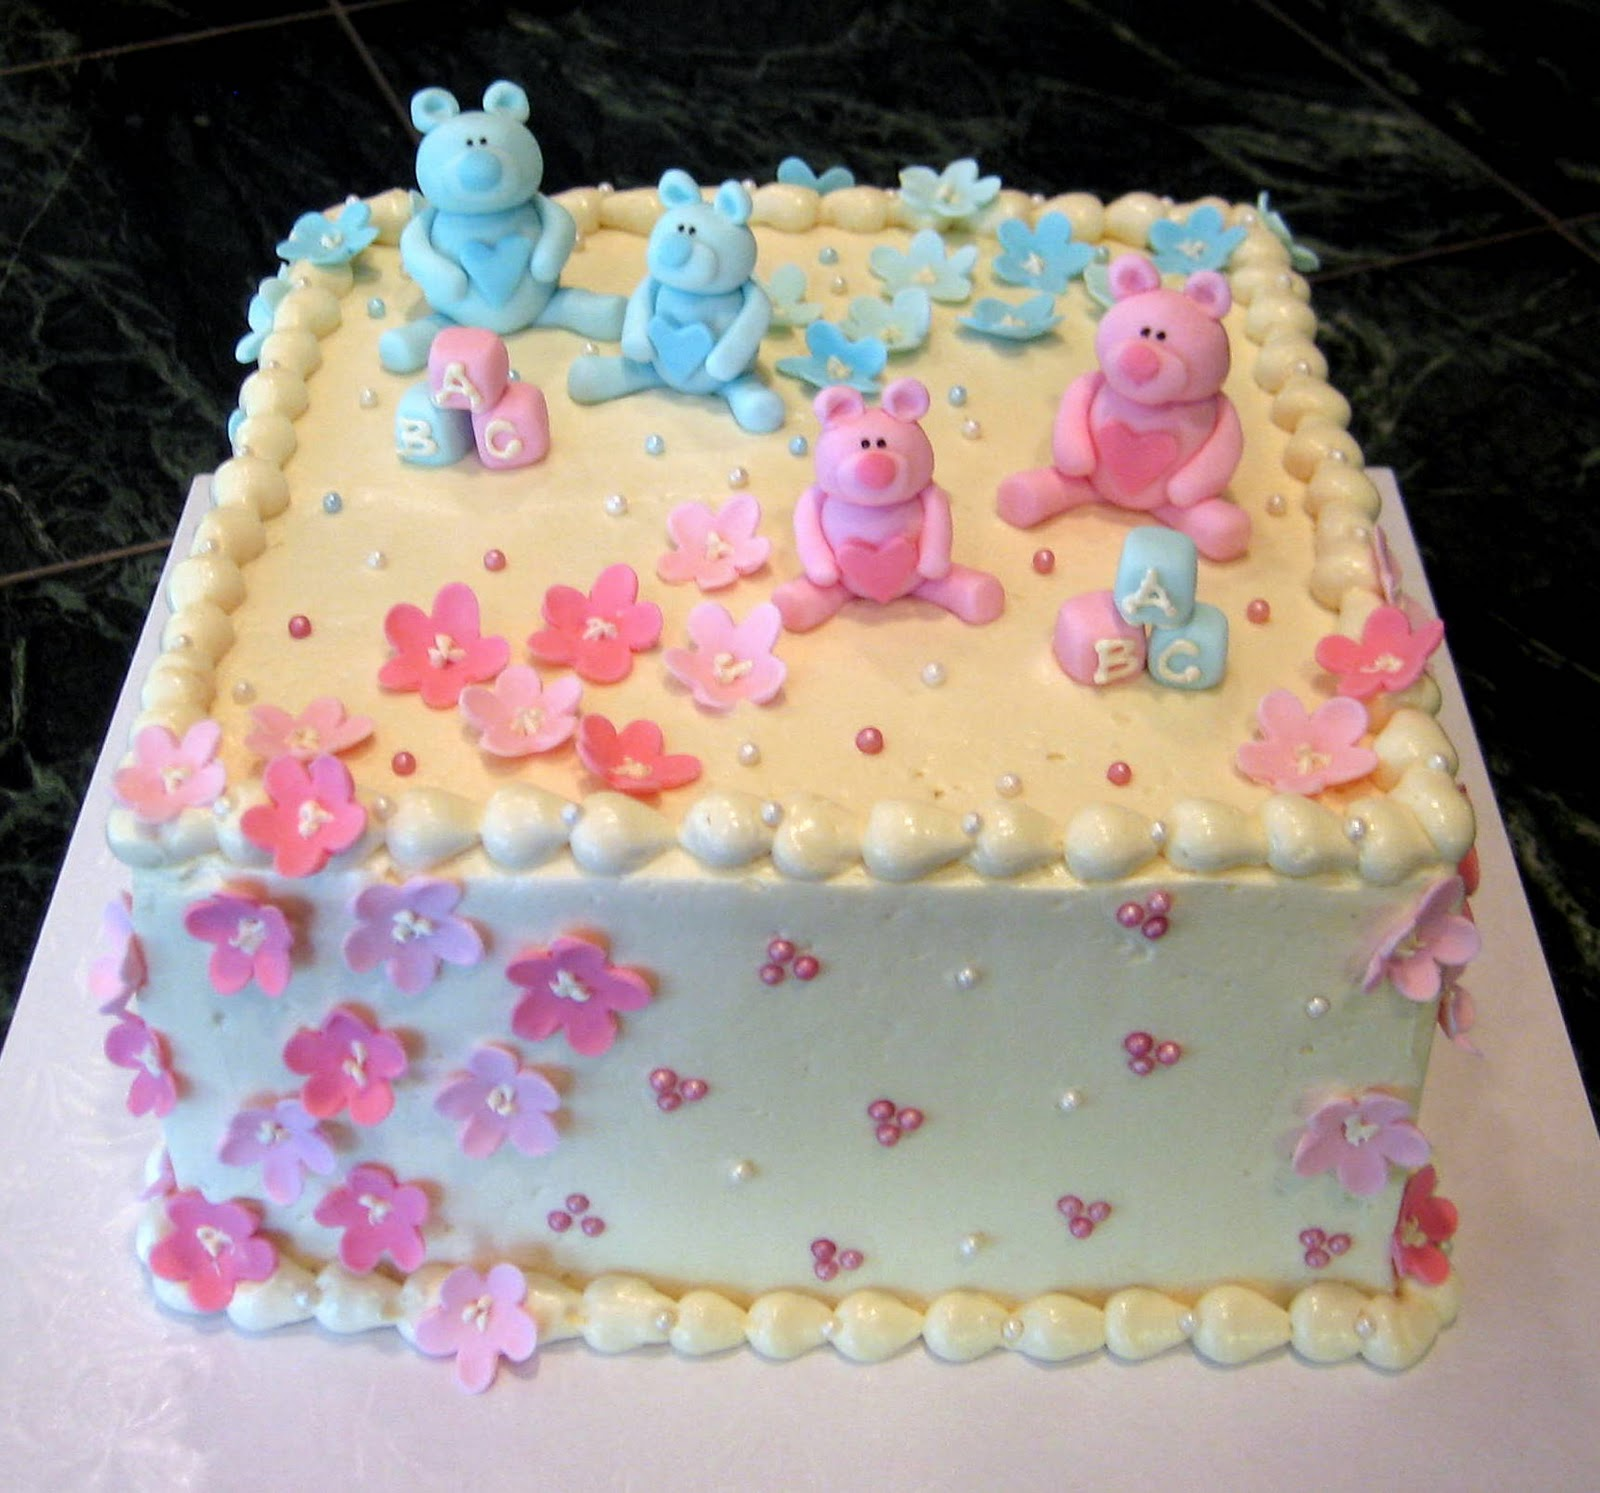 Living room decorating ideas baby shower cake ideas for a for Baby shower cake decoration idea